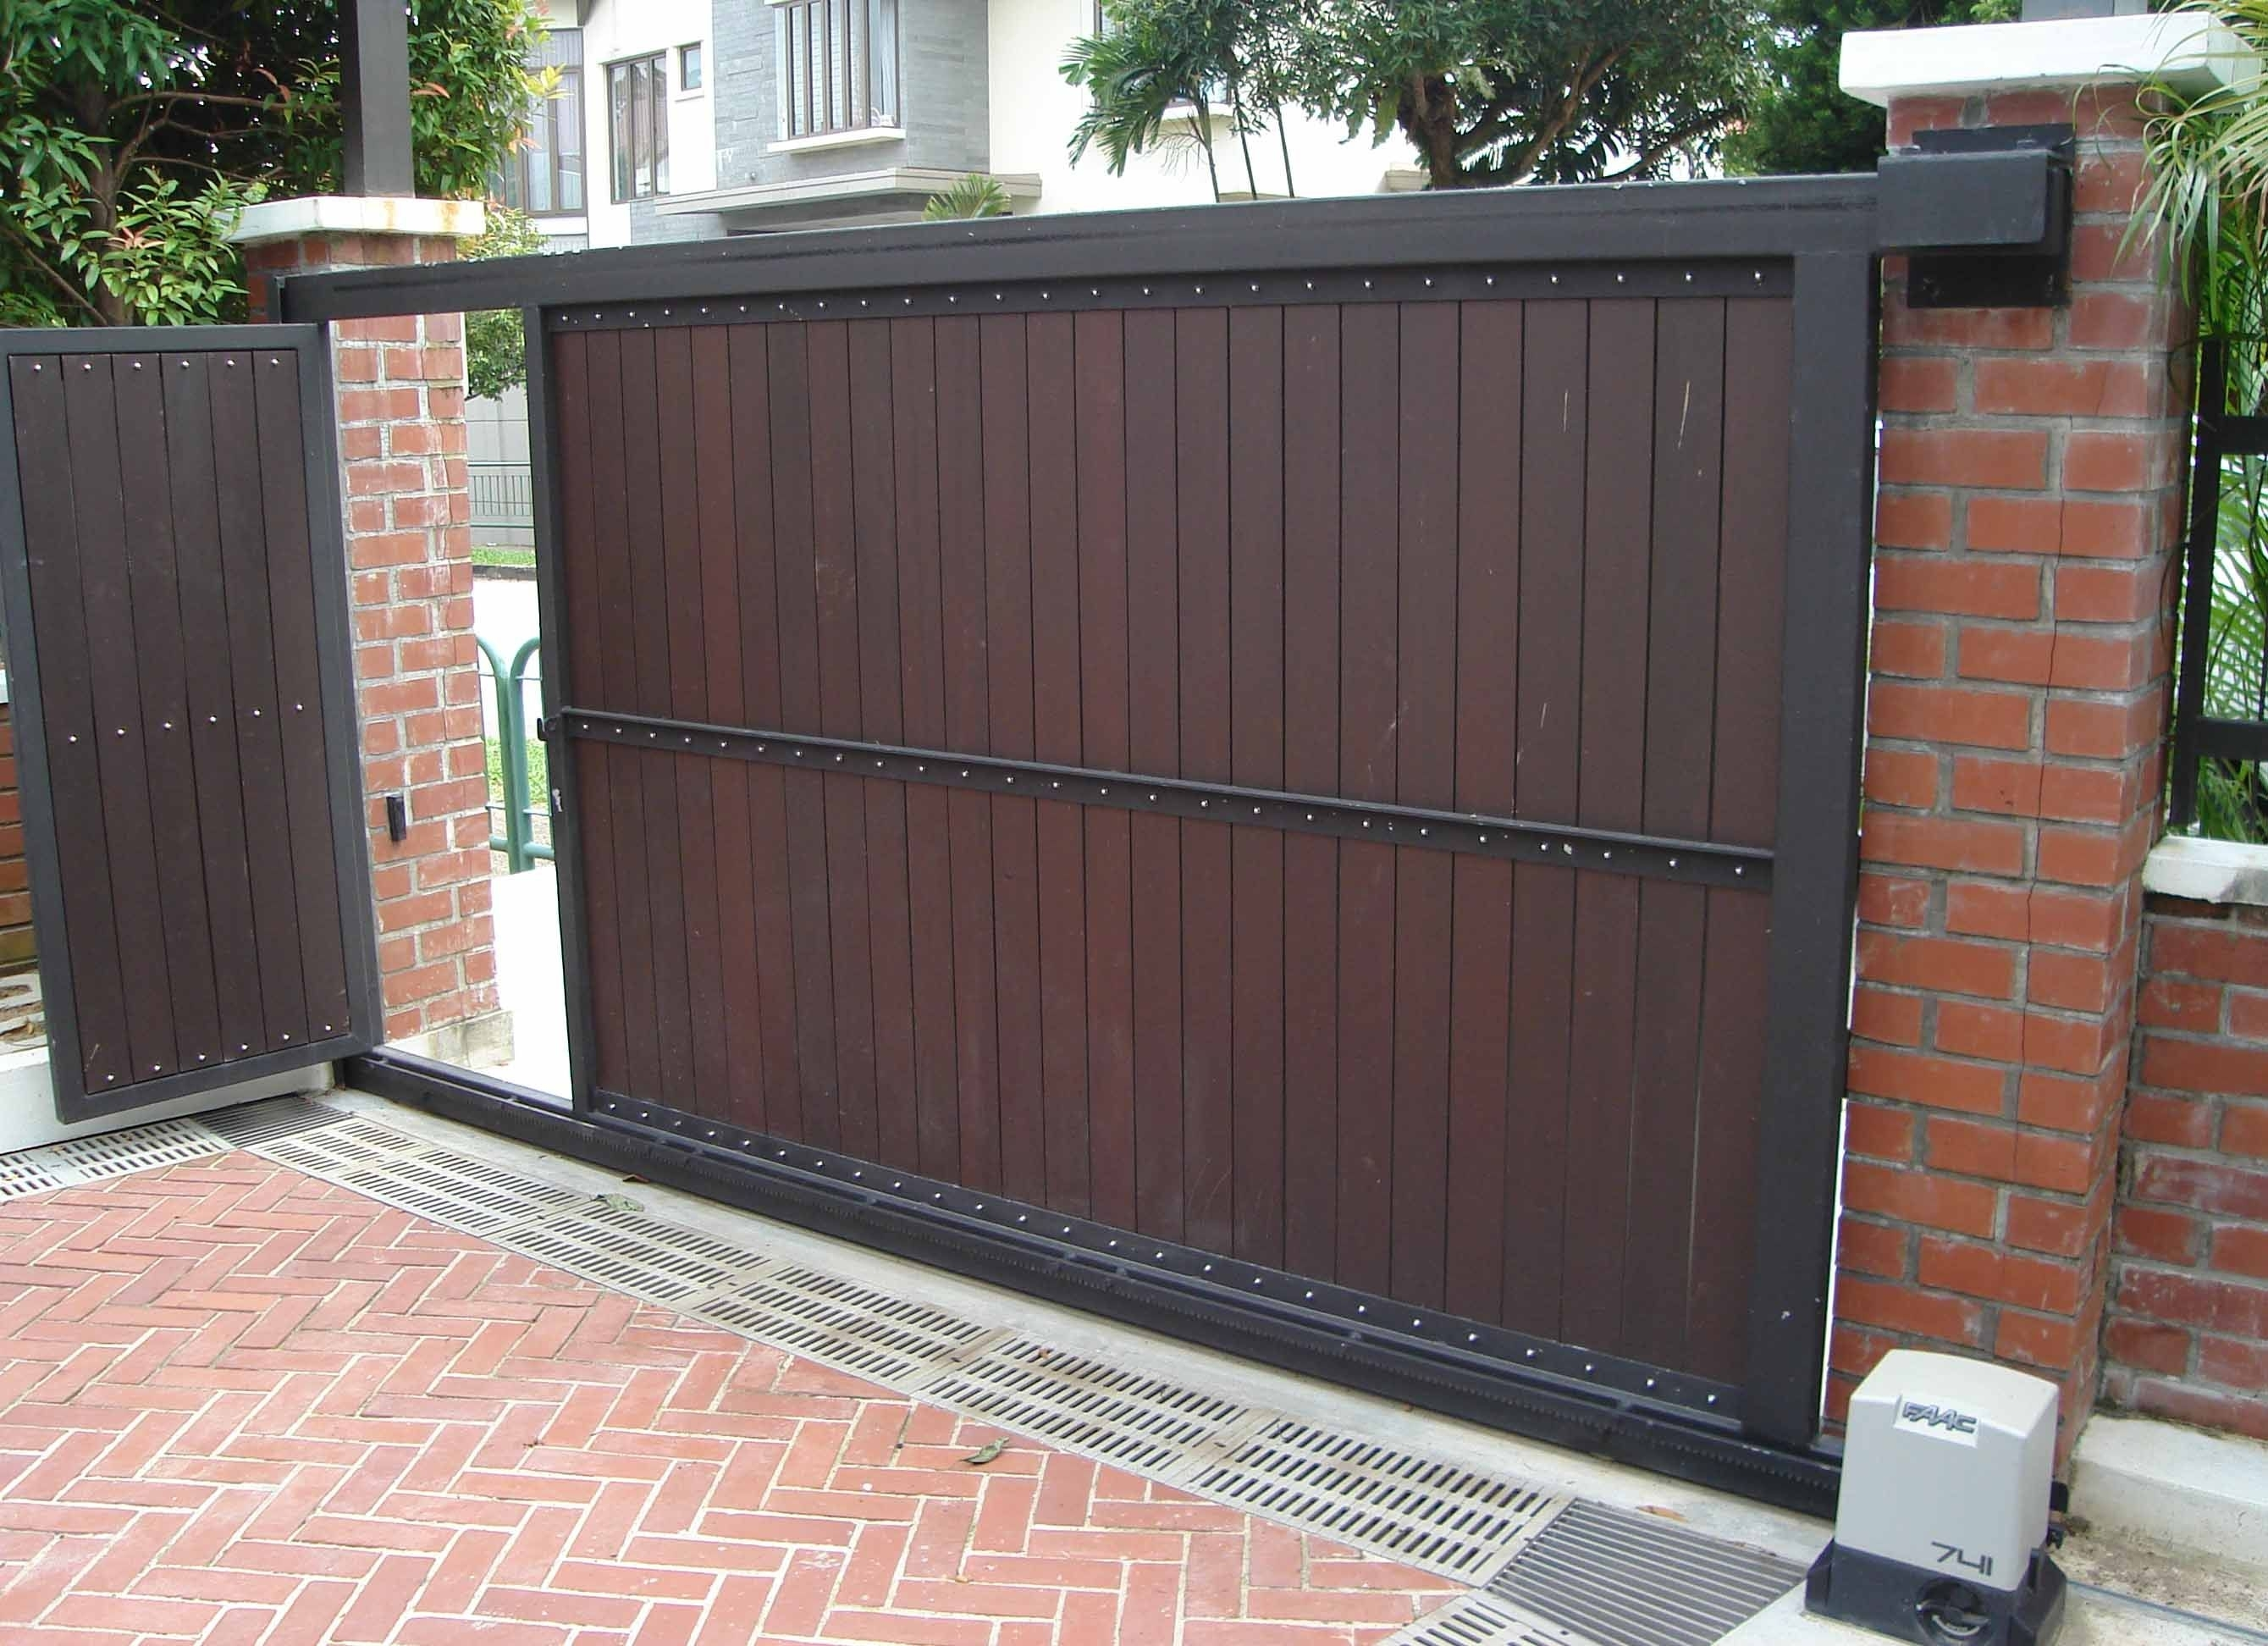 Automatic sliding gates what does a finish nail look like?